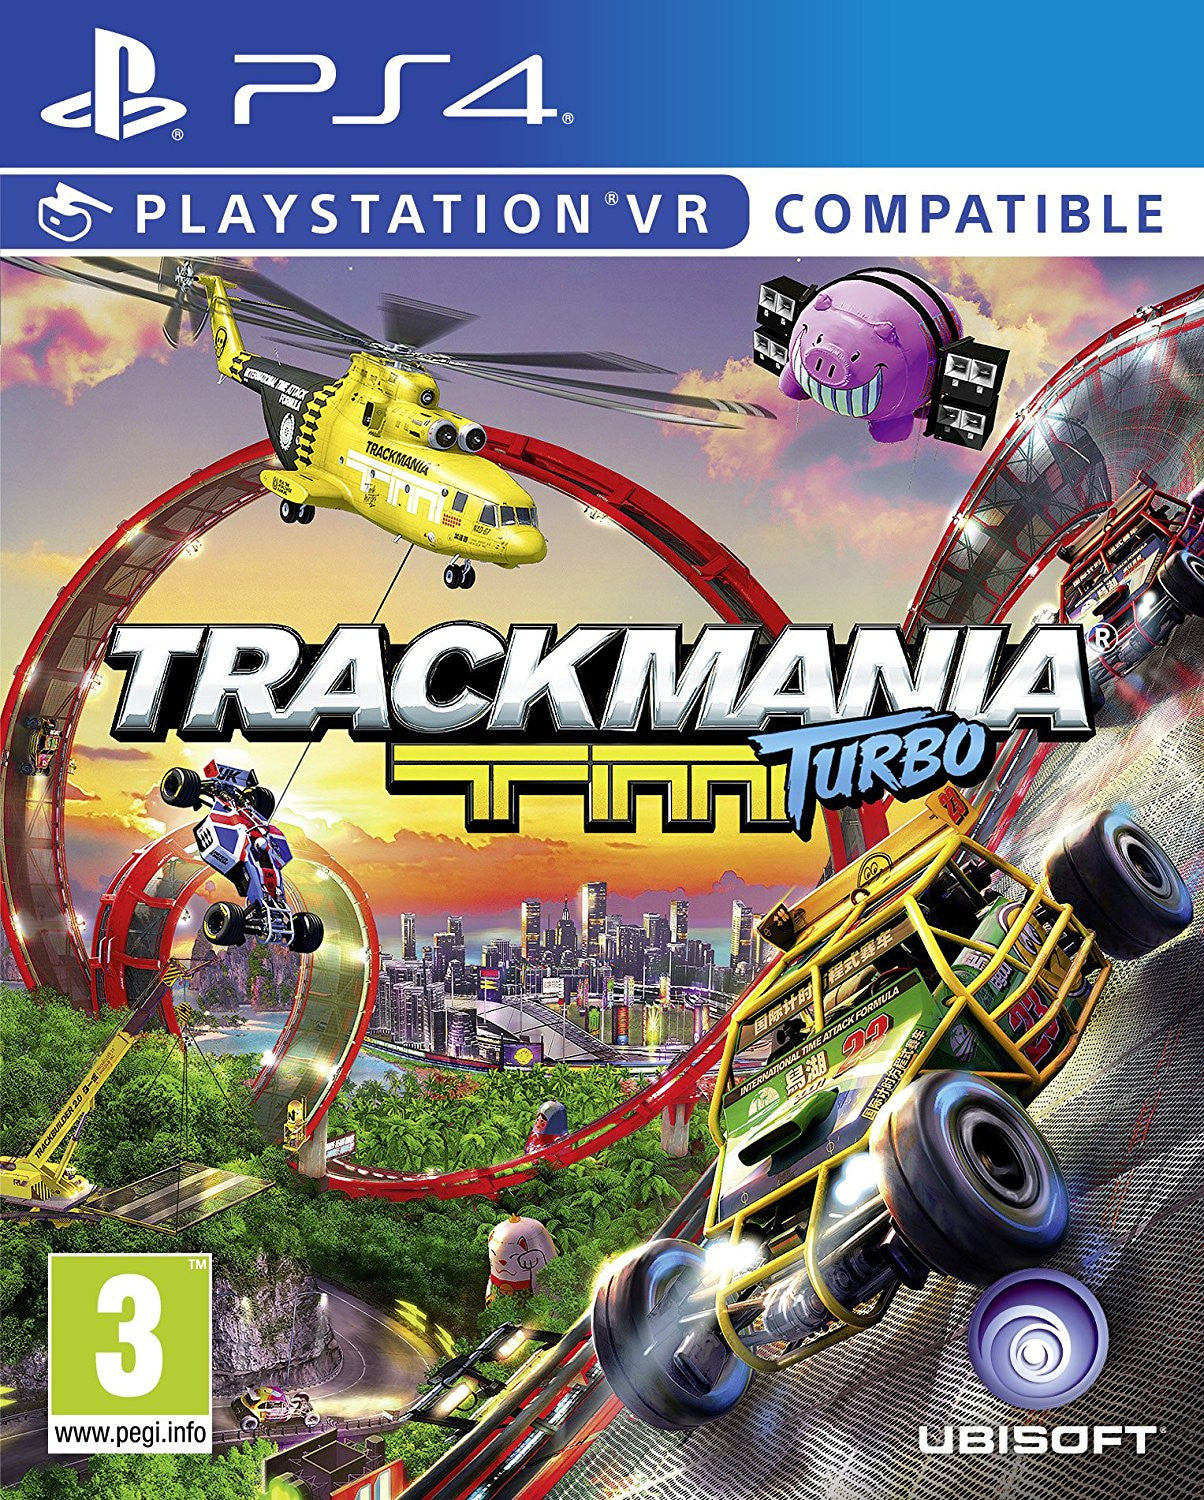 Trackmania Turbo (PS4) - PSVR Compatible